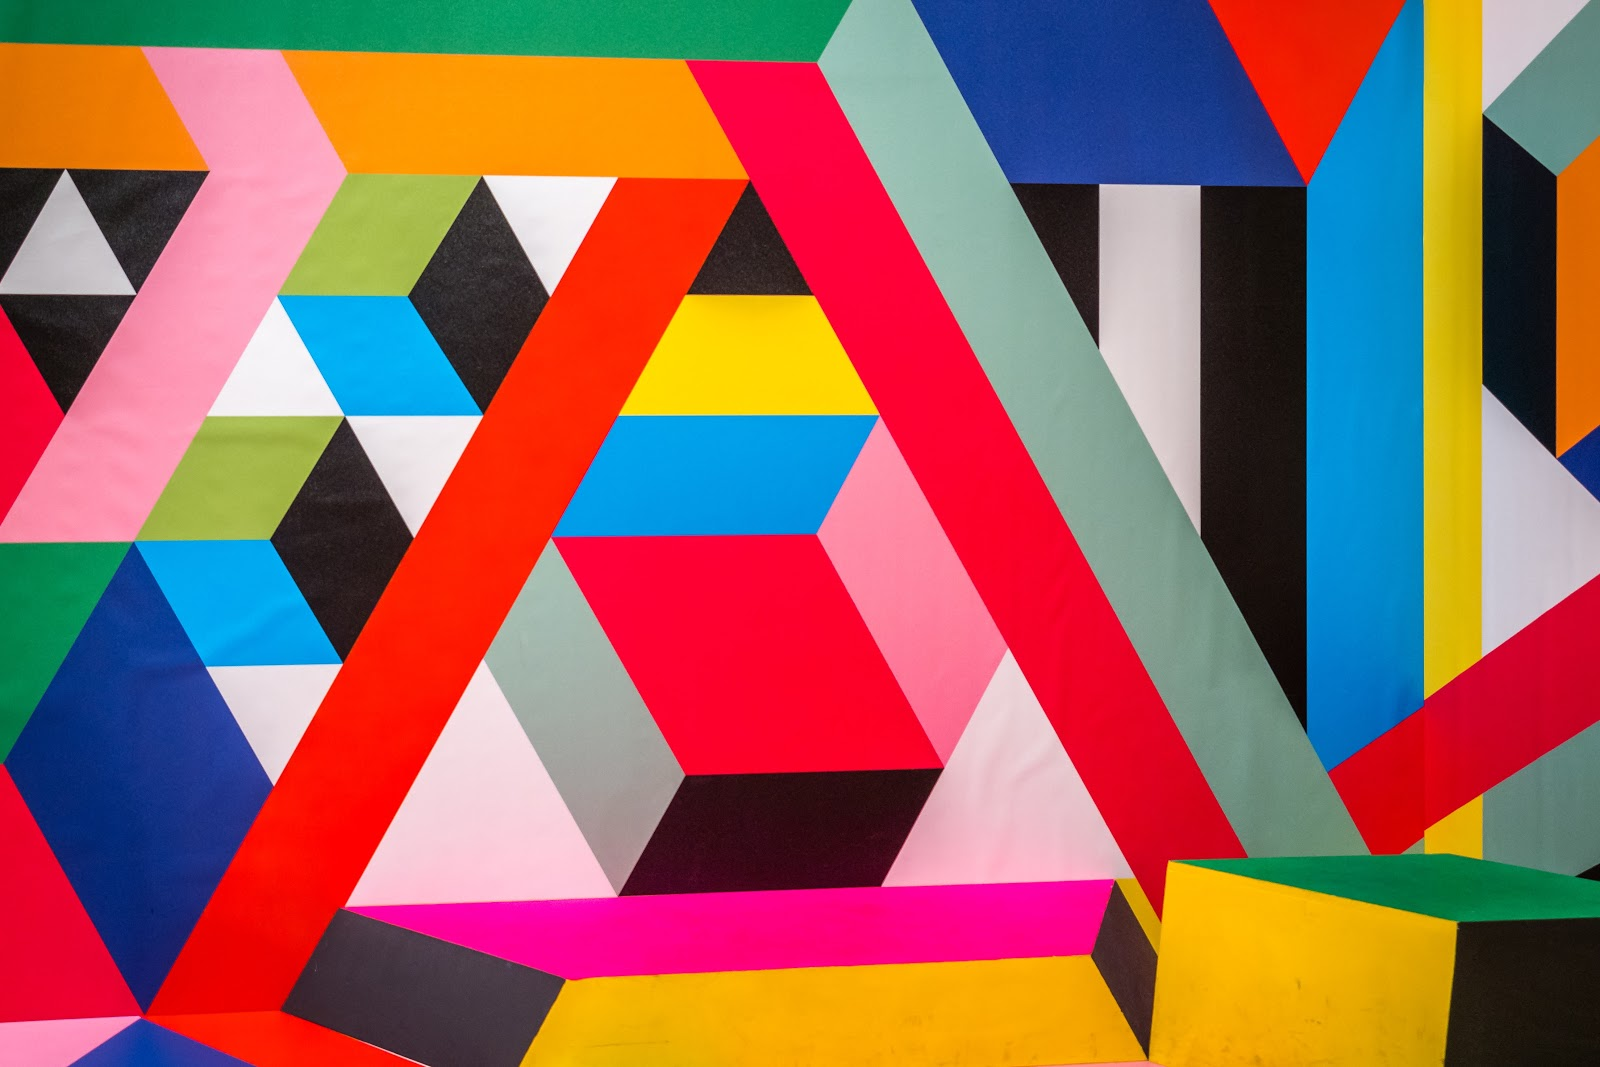 A photo of a colorful, geometric painting